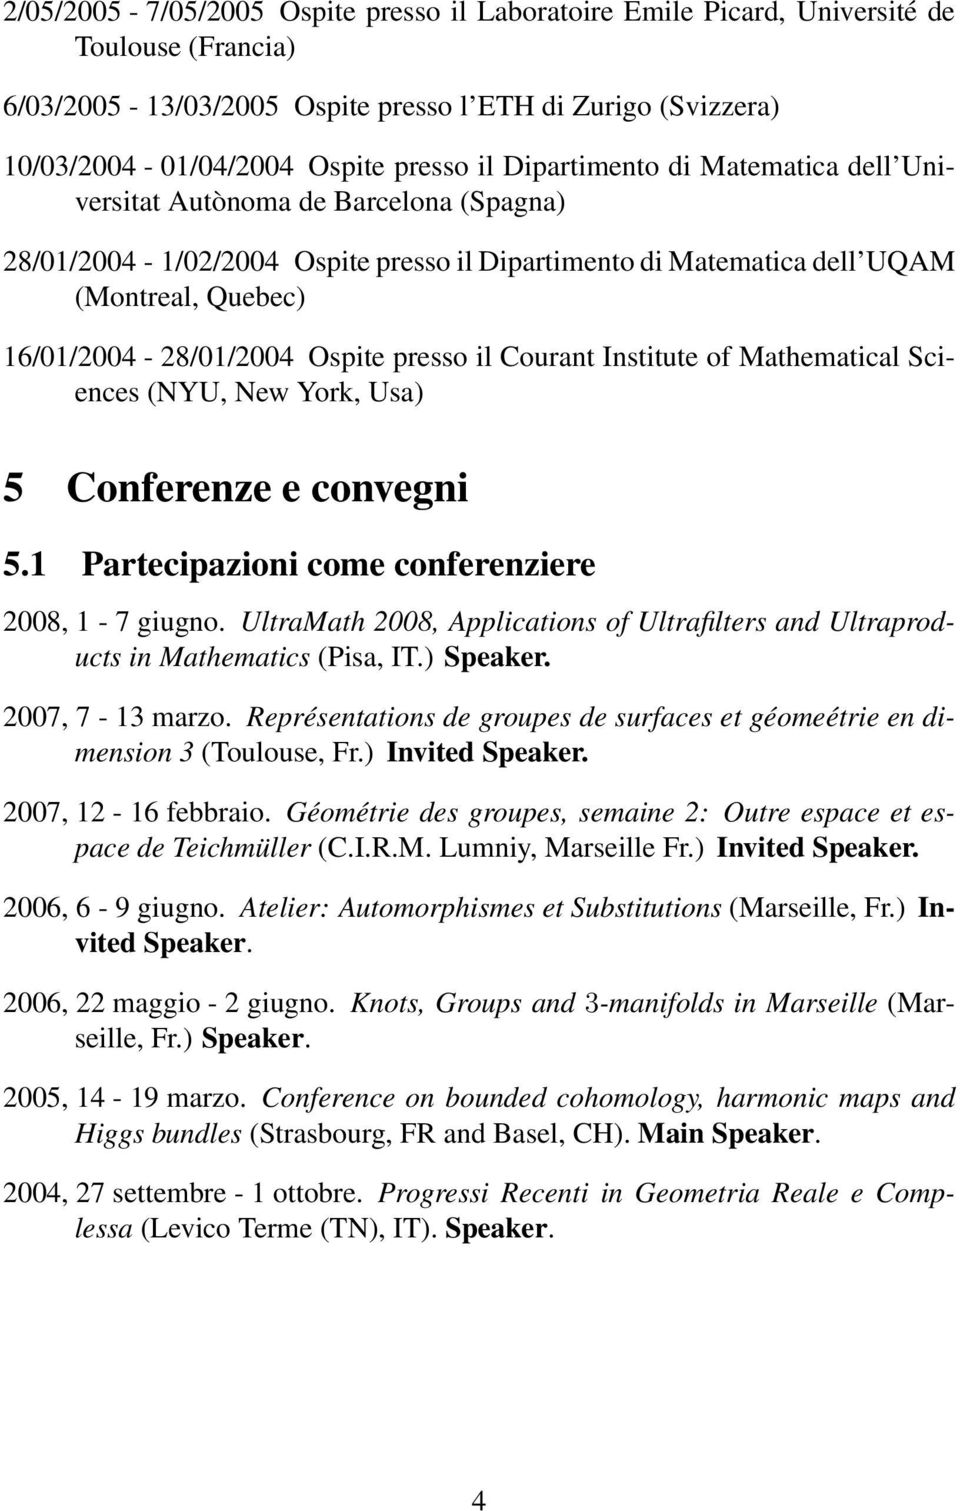 Mathematical Sciences (NYU, New York, Usa) 5 Conferenze e convegni 5.1 Partecipazioni come conferenziere 2008, 1-7 giugno.